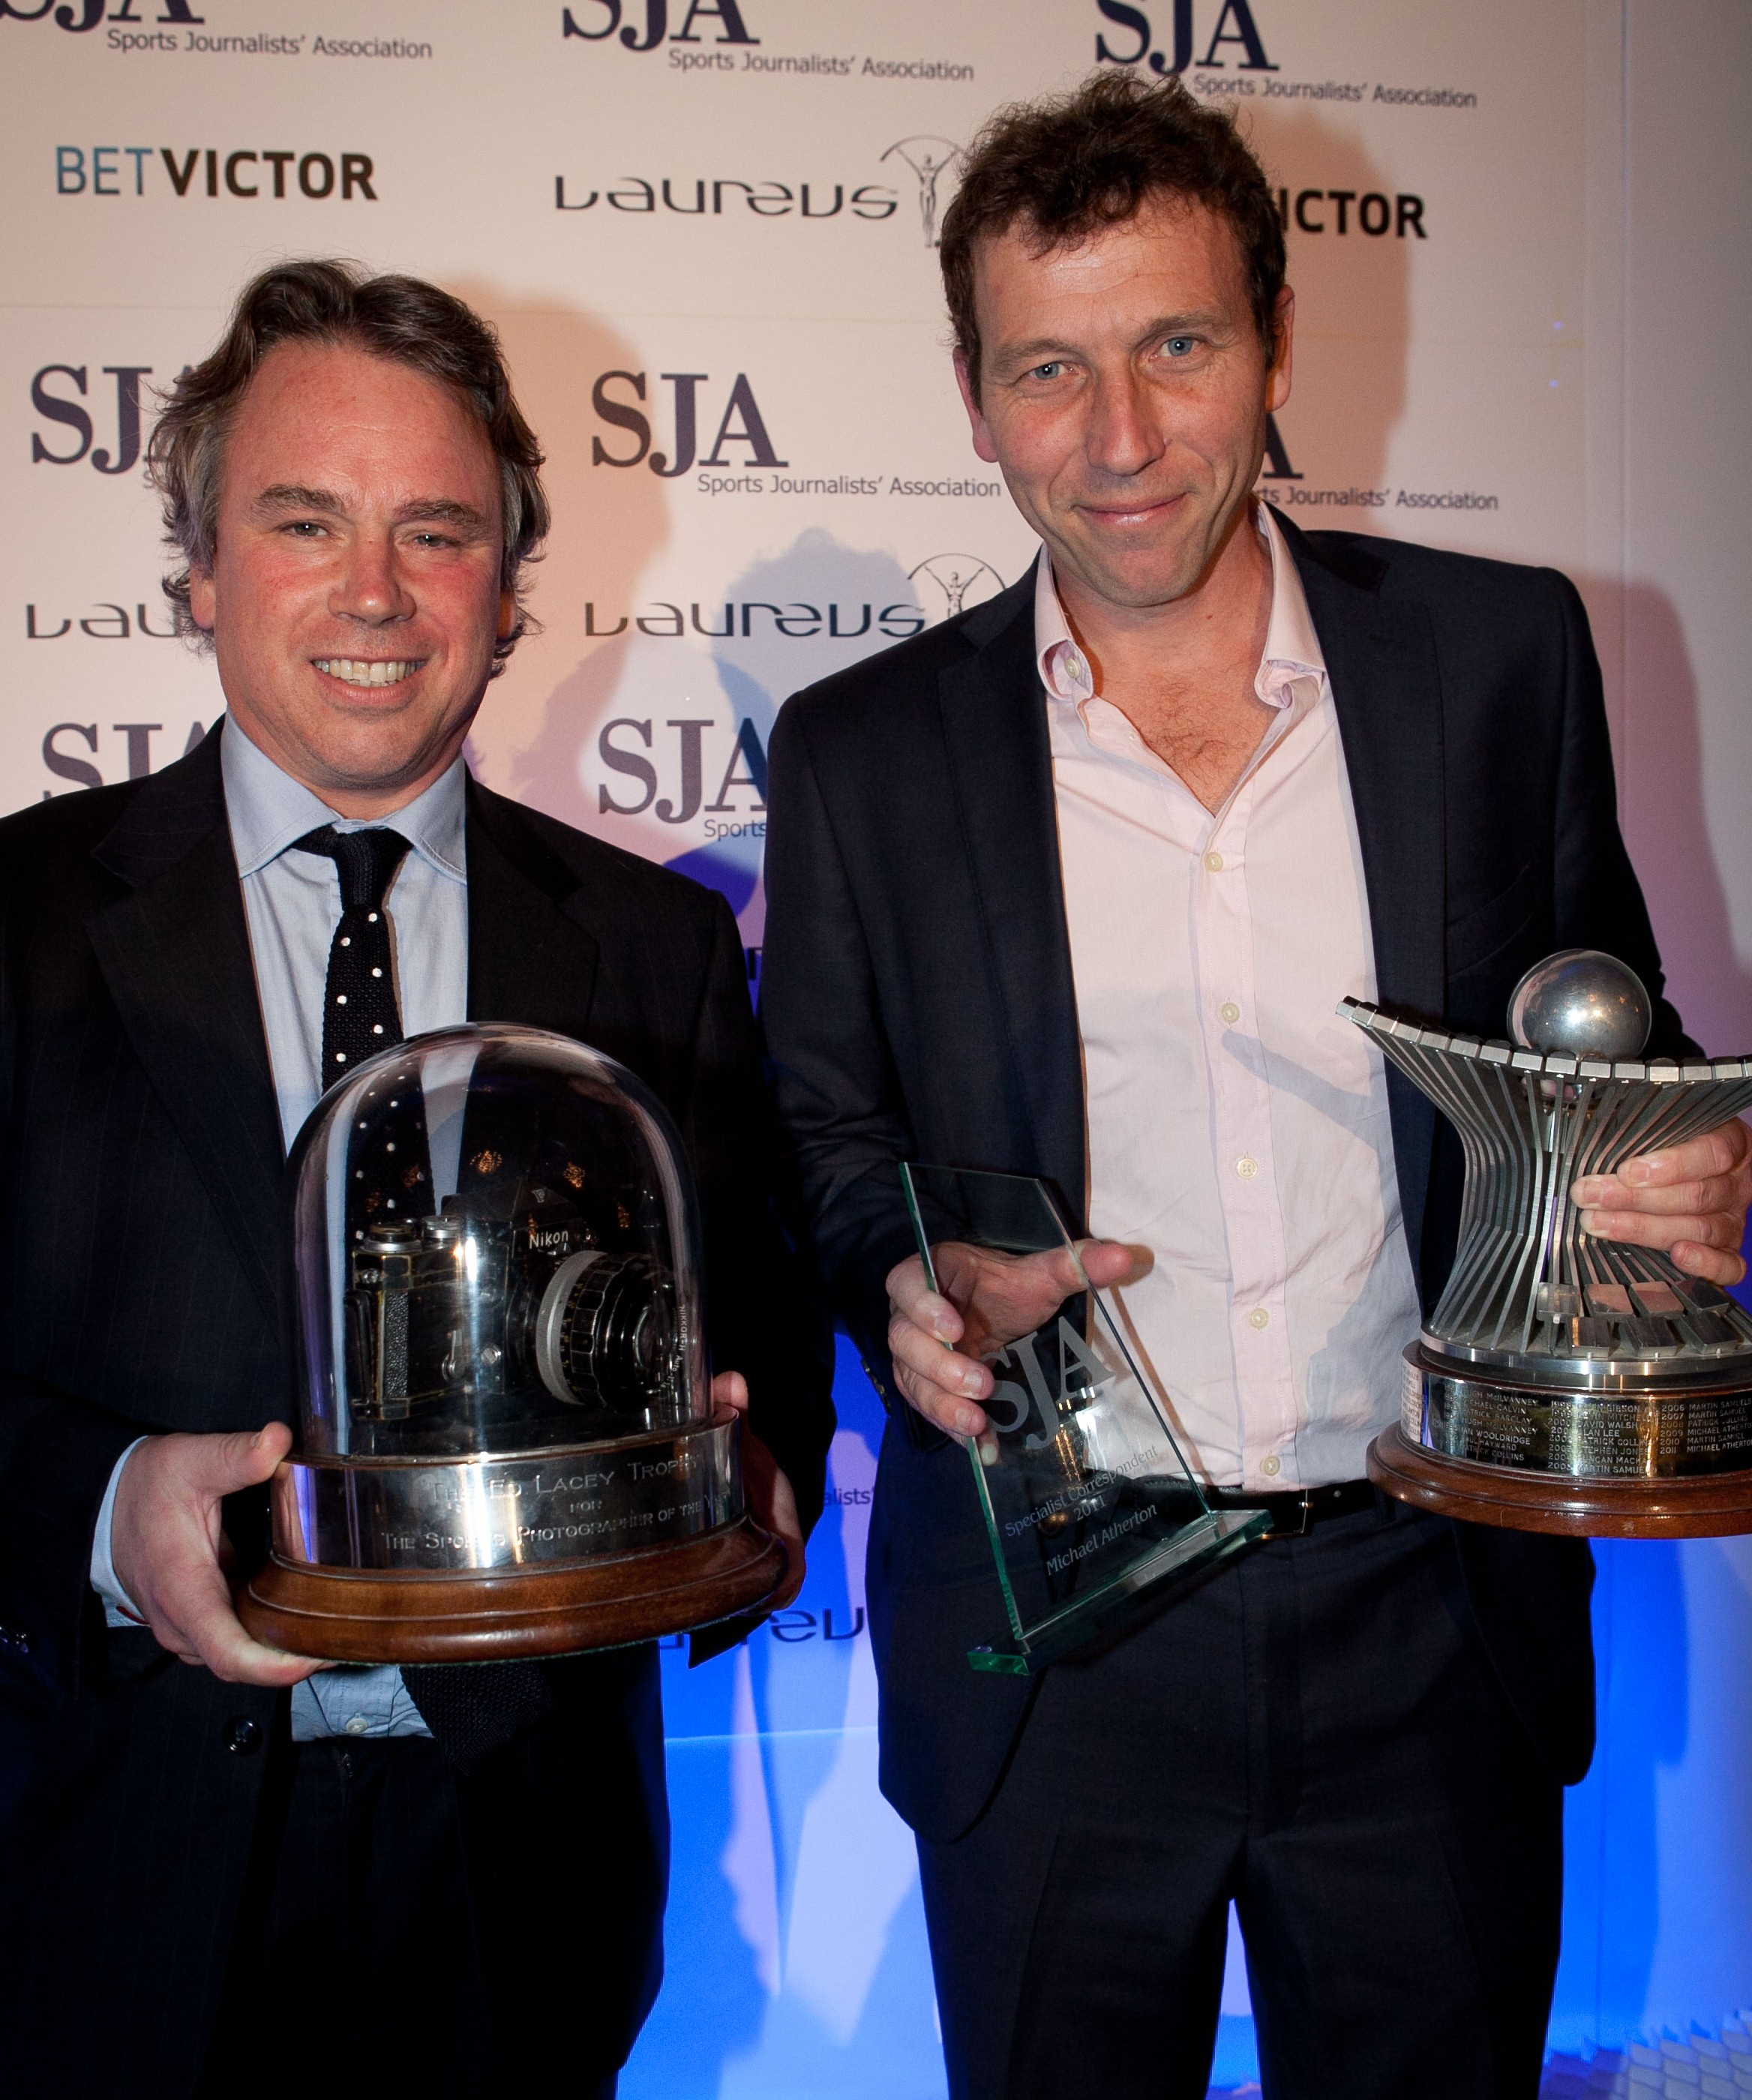 Titles regained: Edward Whitaker and Michael Atherton, the SJA's Sports Photographer and Sports Writer of 2011